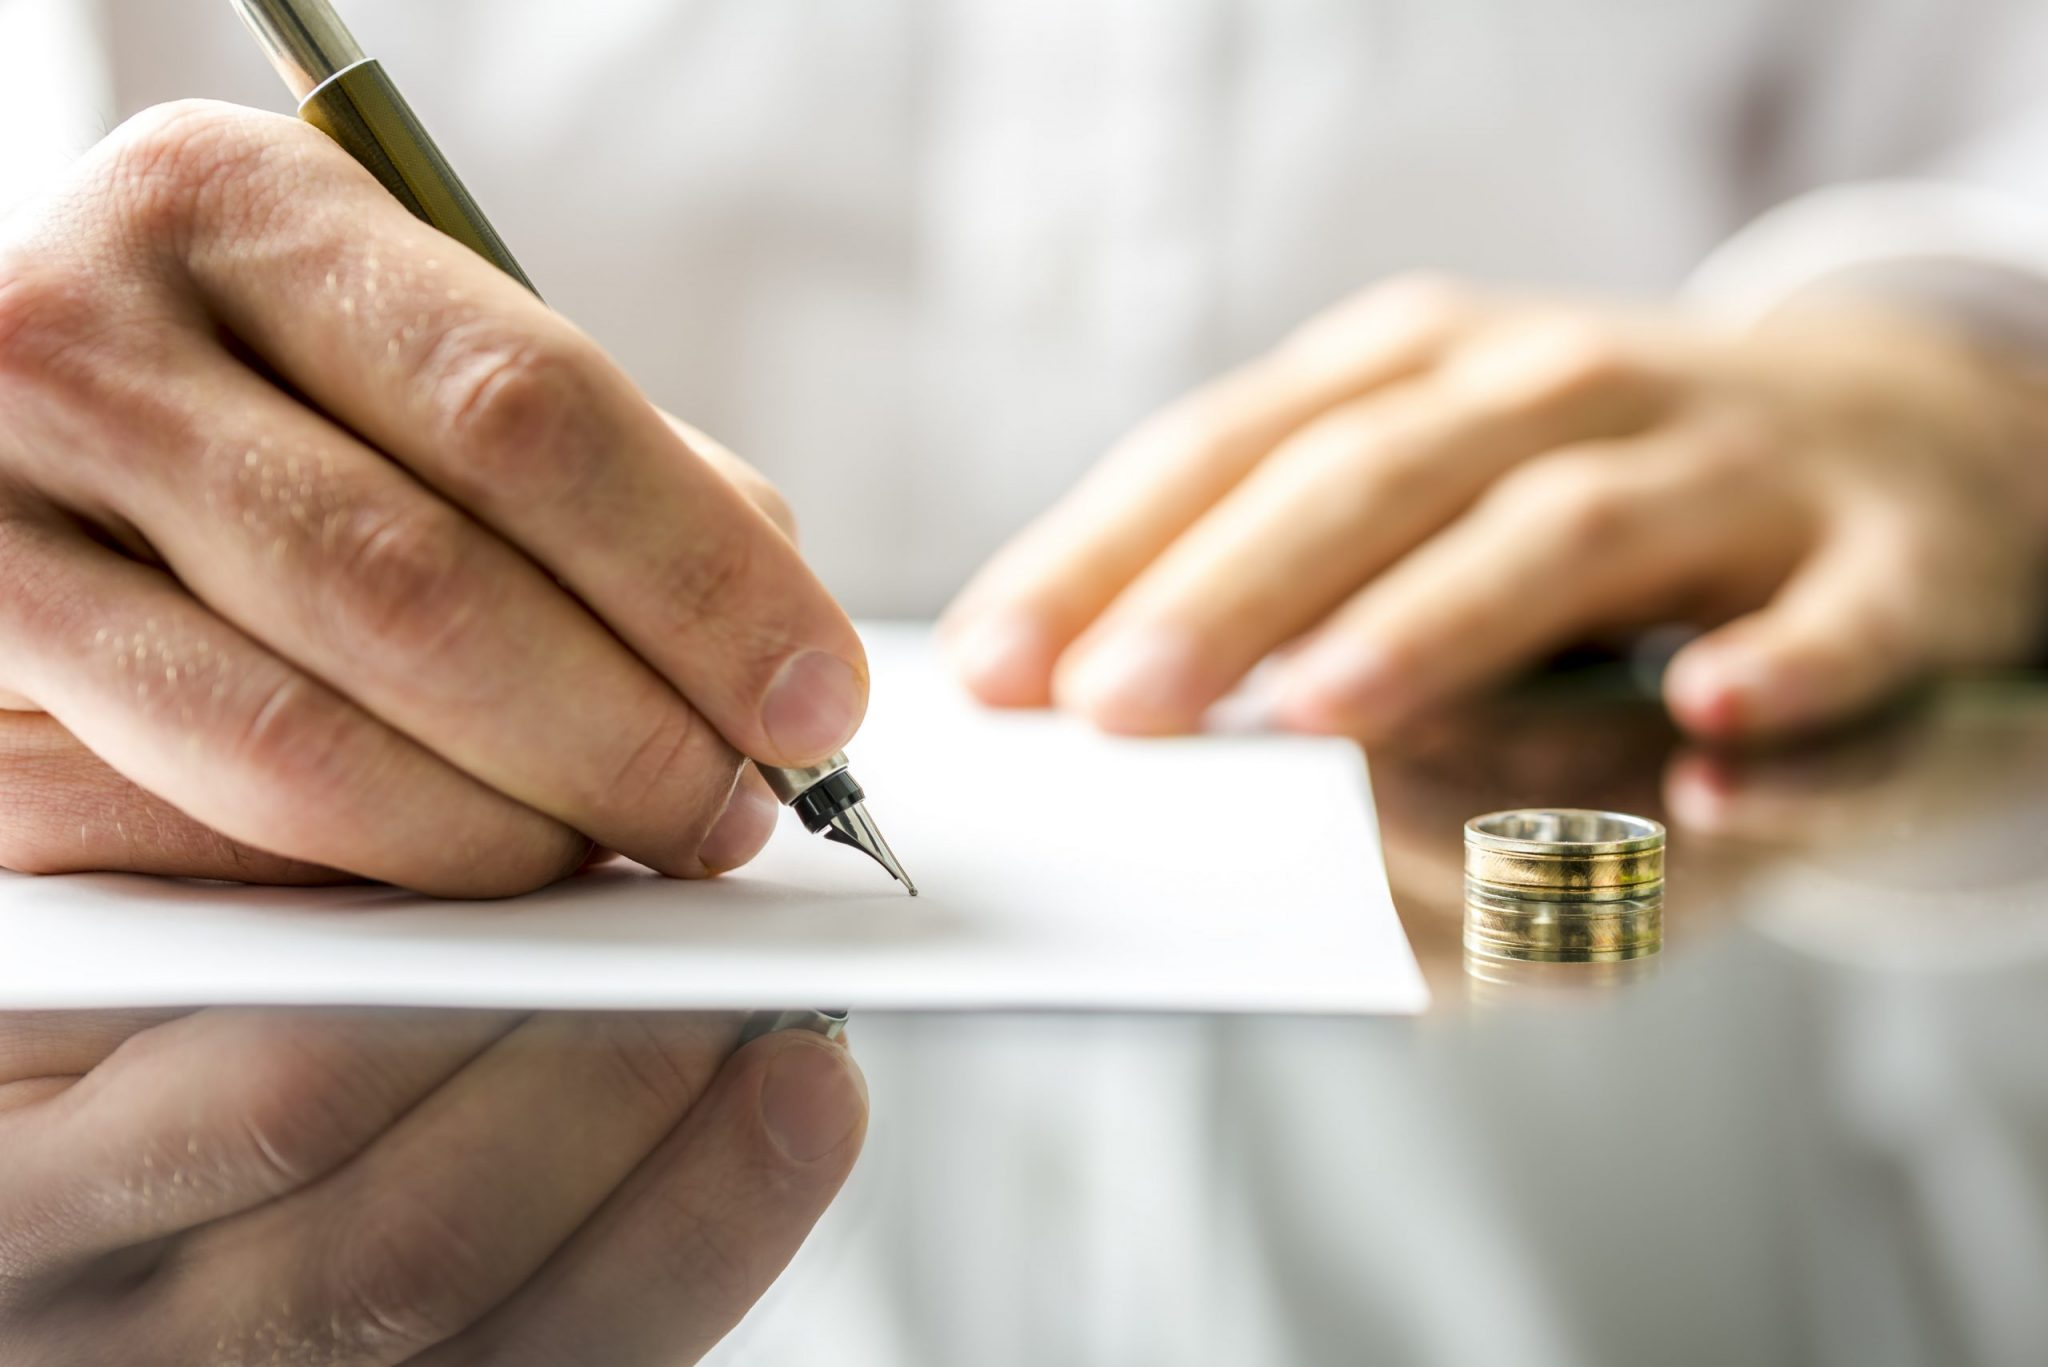 An upset woman taking off her wedding band in the foreground with an sad man in the background, representing how our Lincoln Park divorce attorneys can represent you in your divorce case.